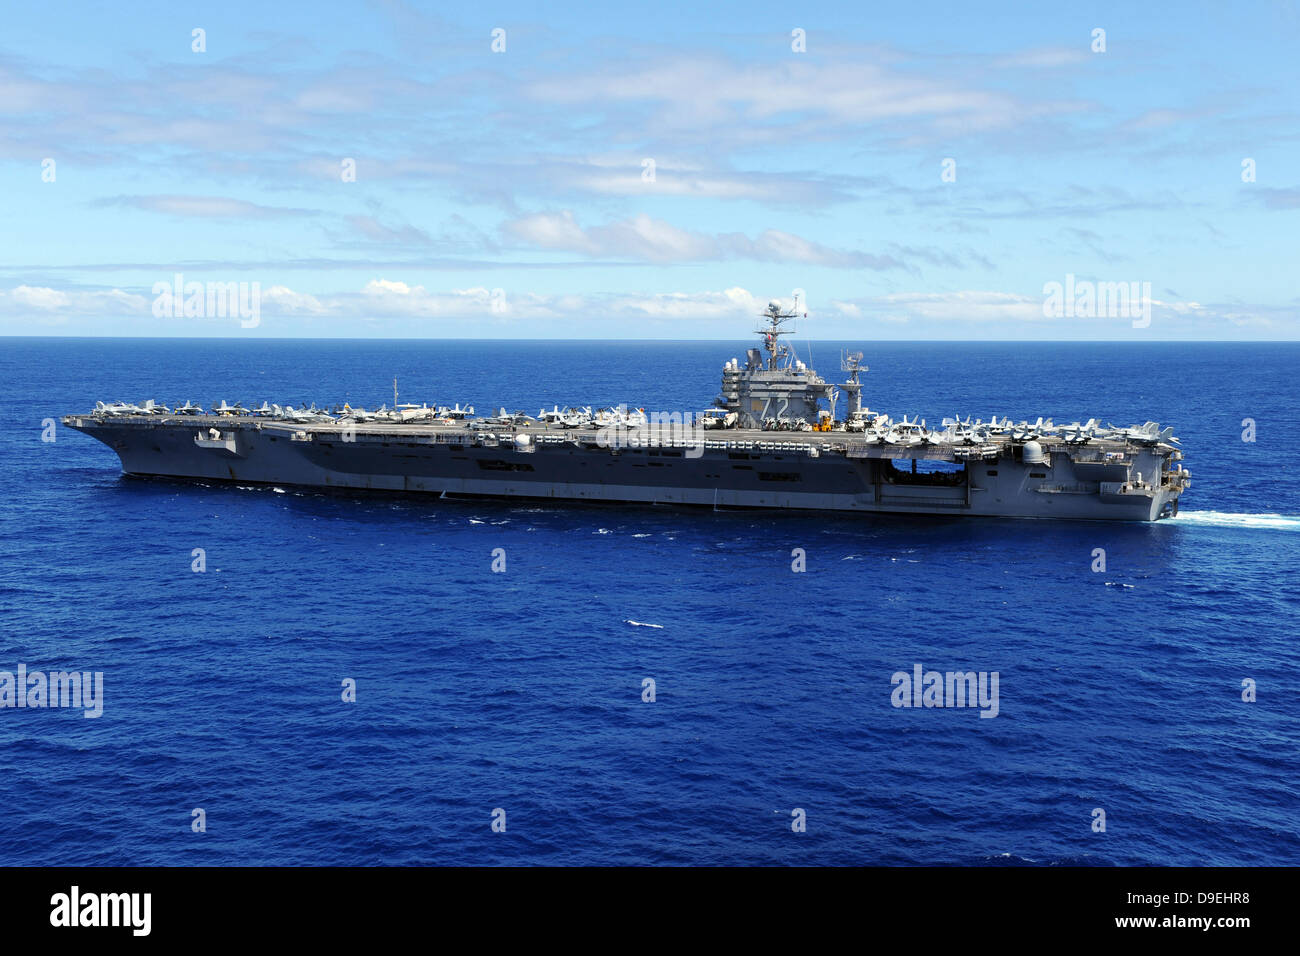 The aircraft carrier USS Abraham Lincoln transits across the Pacific Ocean - Stock Image